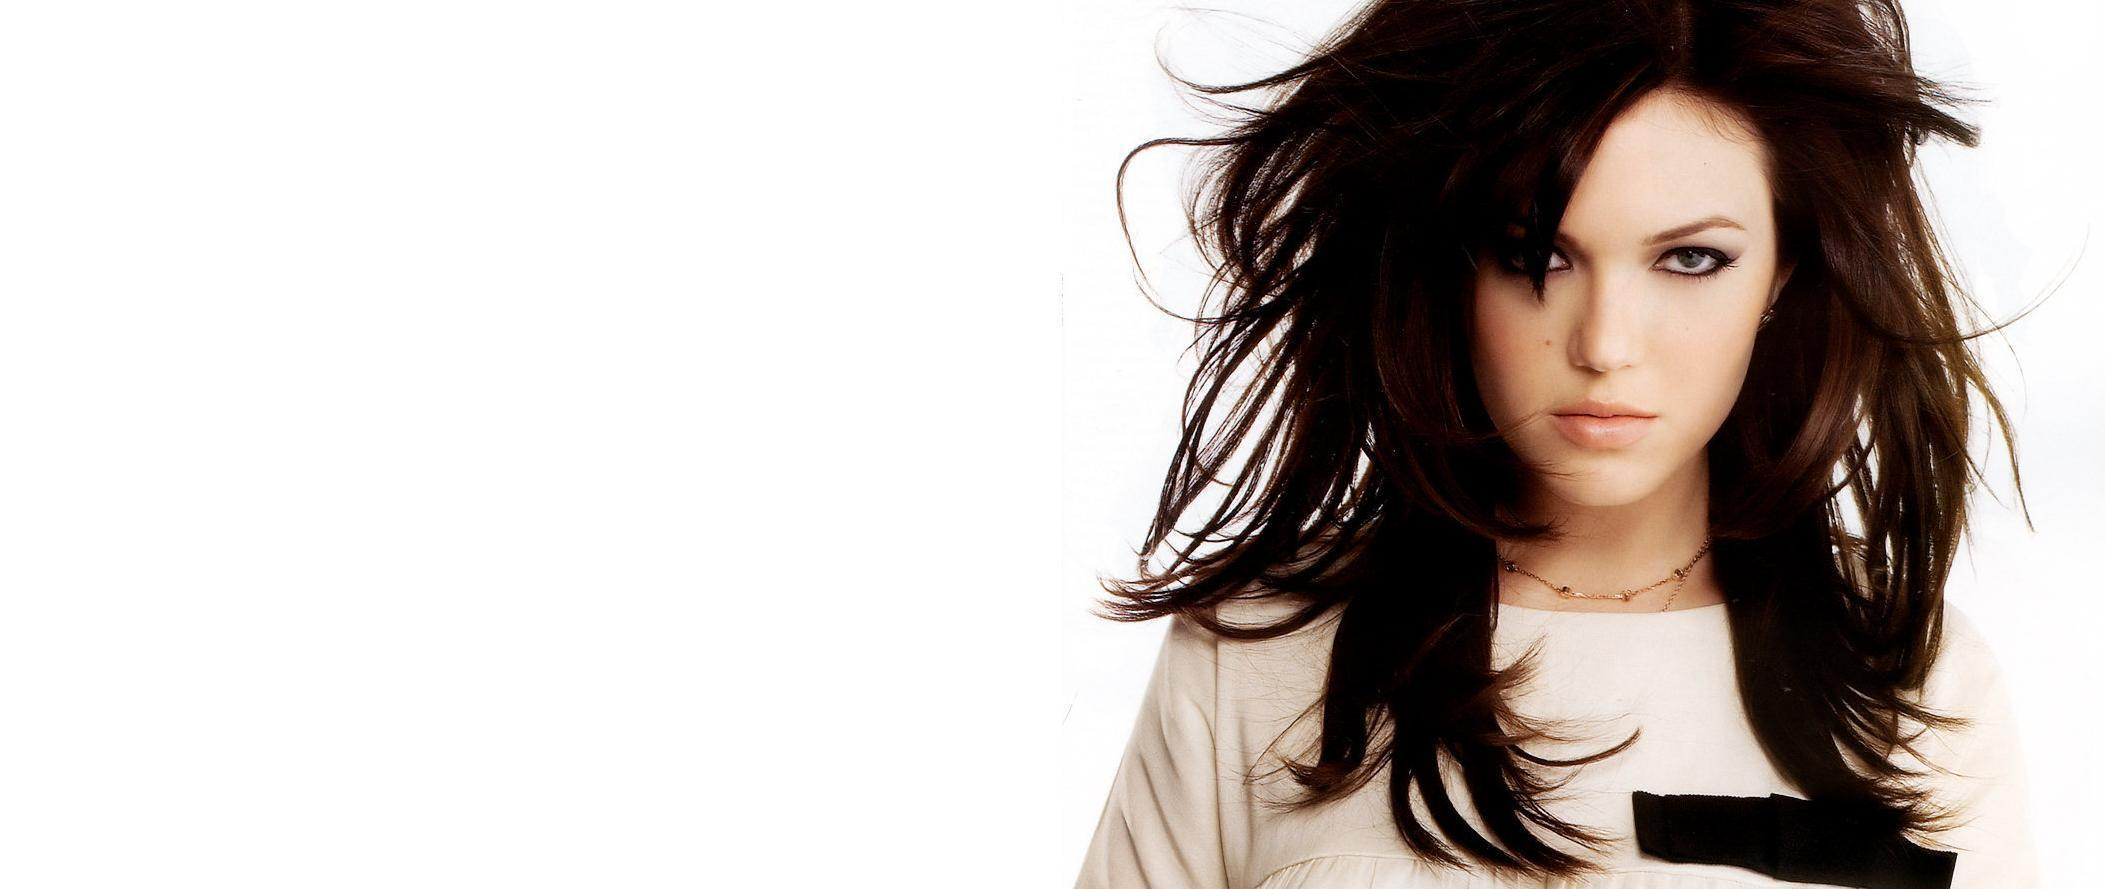 mandy moore wallpaper and background image | 2105x889 | id:167632